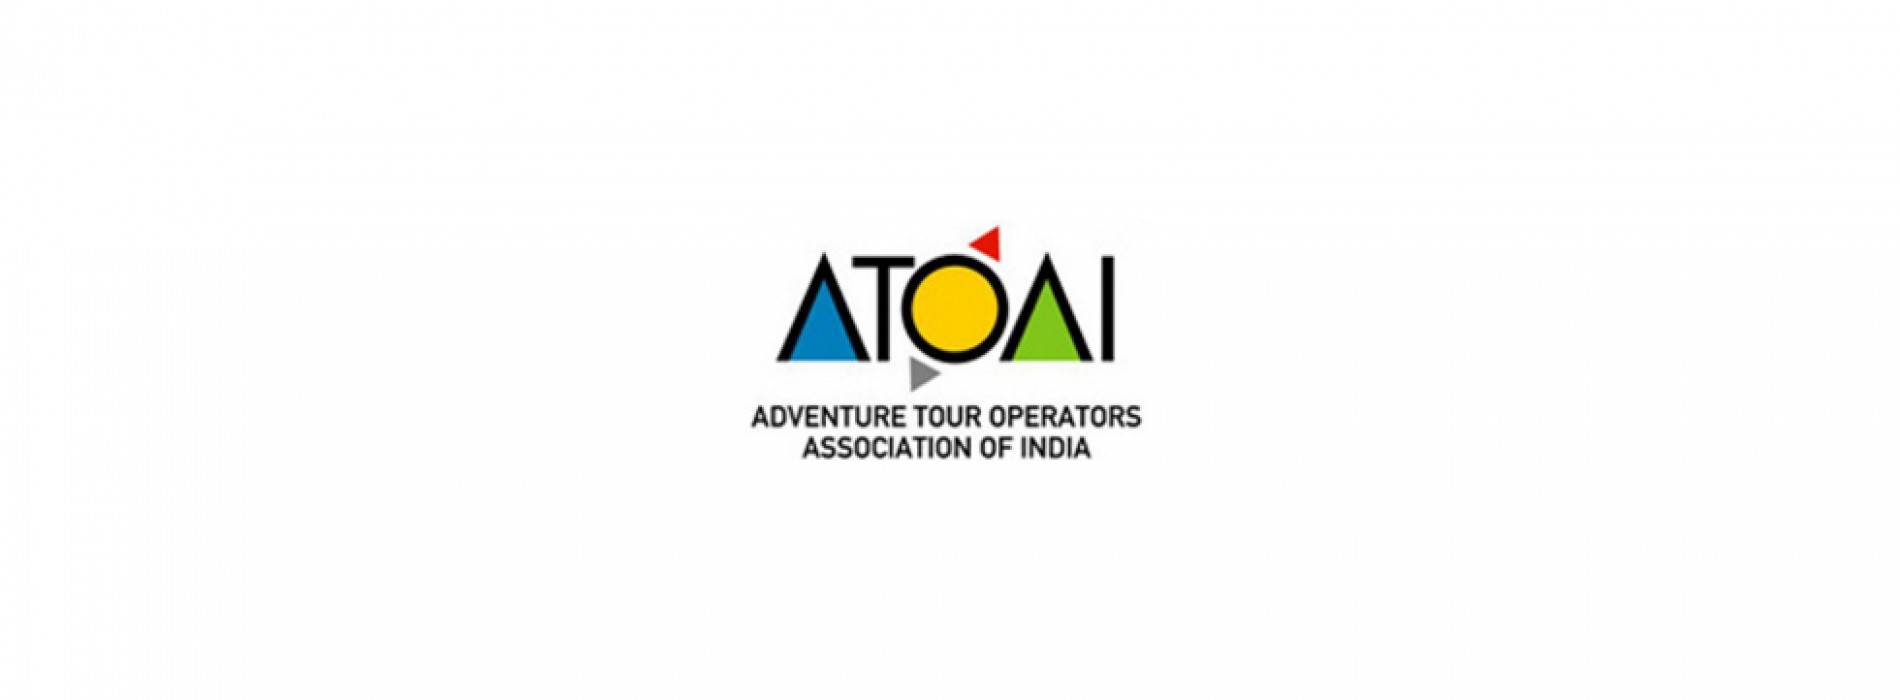 """MOT announced 2018 as """"The Year of Adventure Tourism"""""""